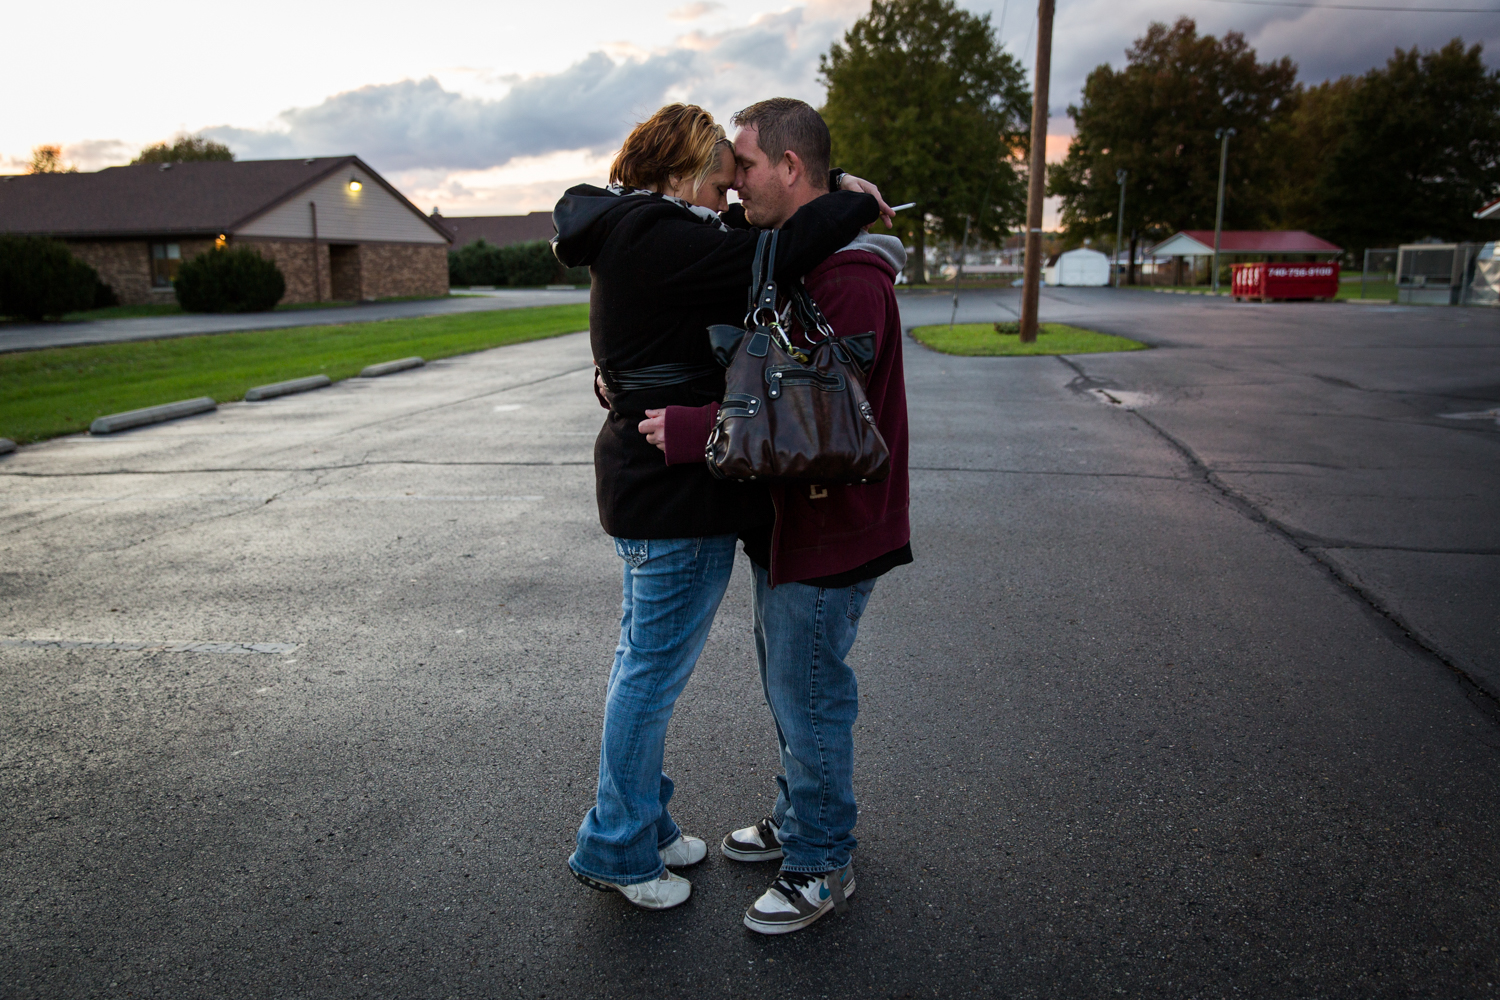 Whitney Johnson and Jeremy Rhoades hold each other in the parking lot outside of First Baptist Church in Logan, Ohio, before Celebrate Recovery, a Christ-based support group for recovering addicts.